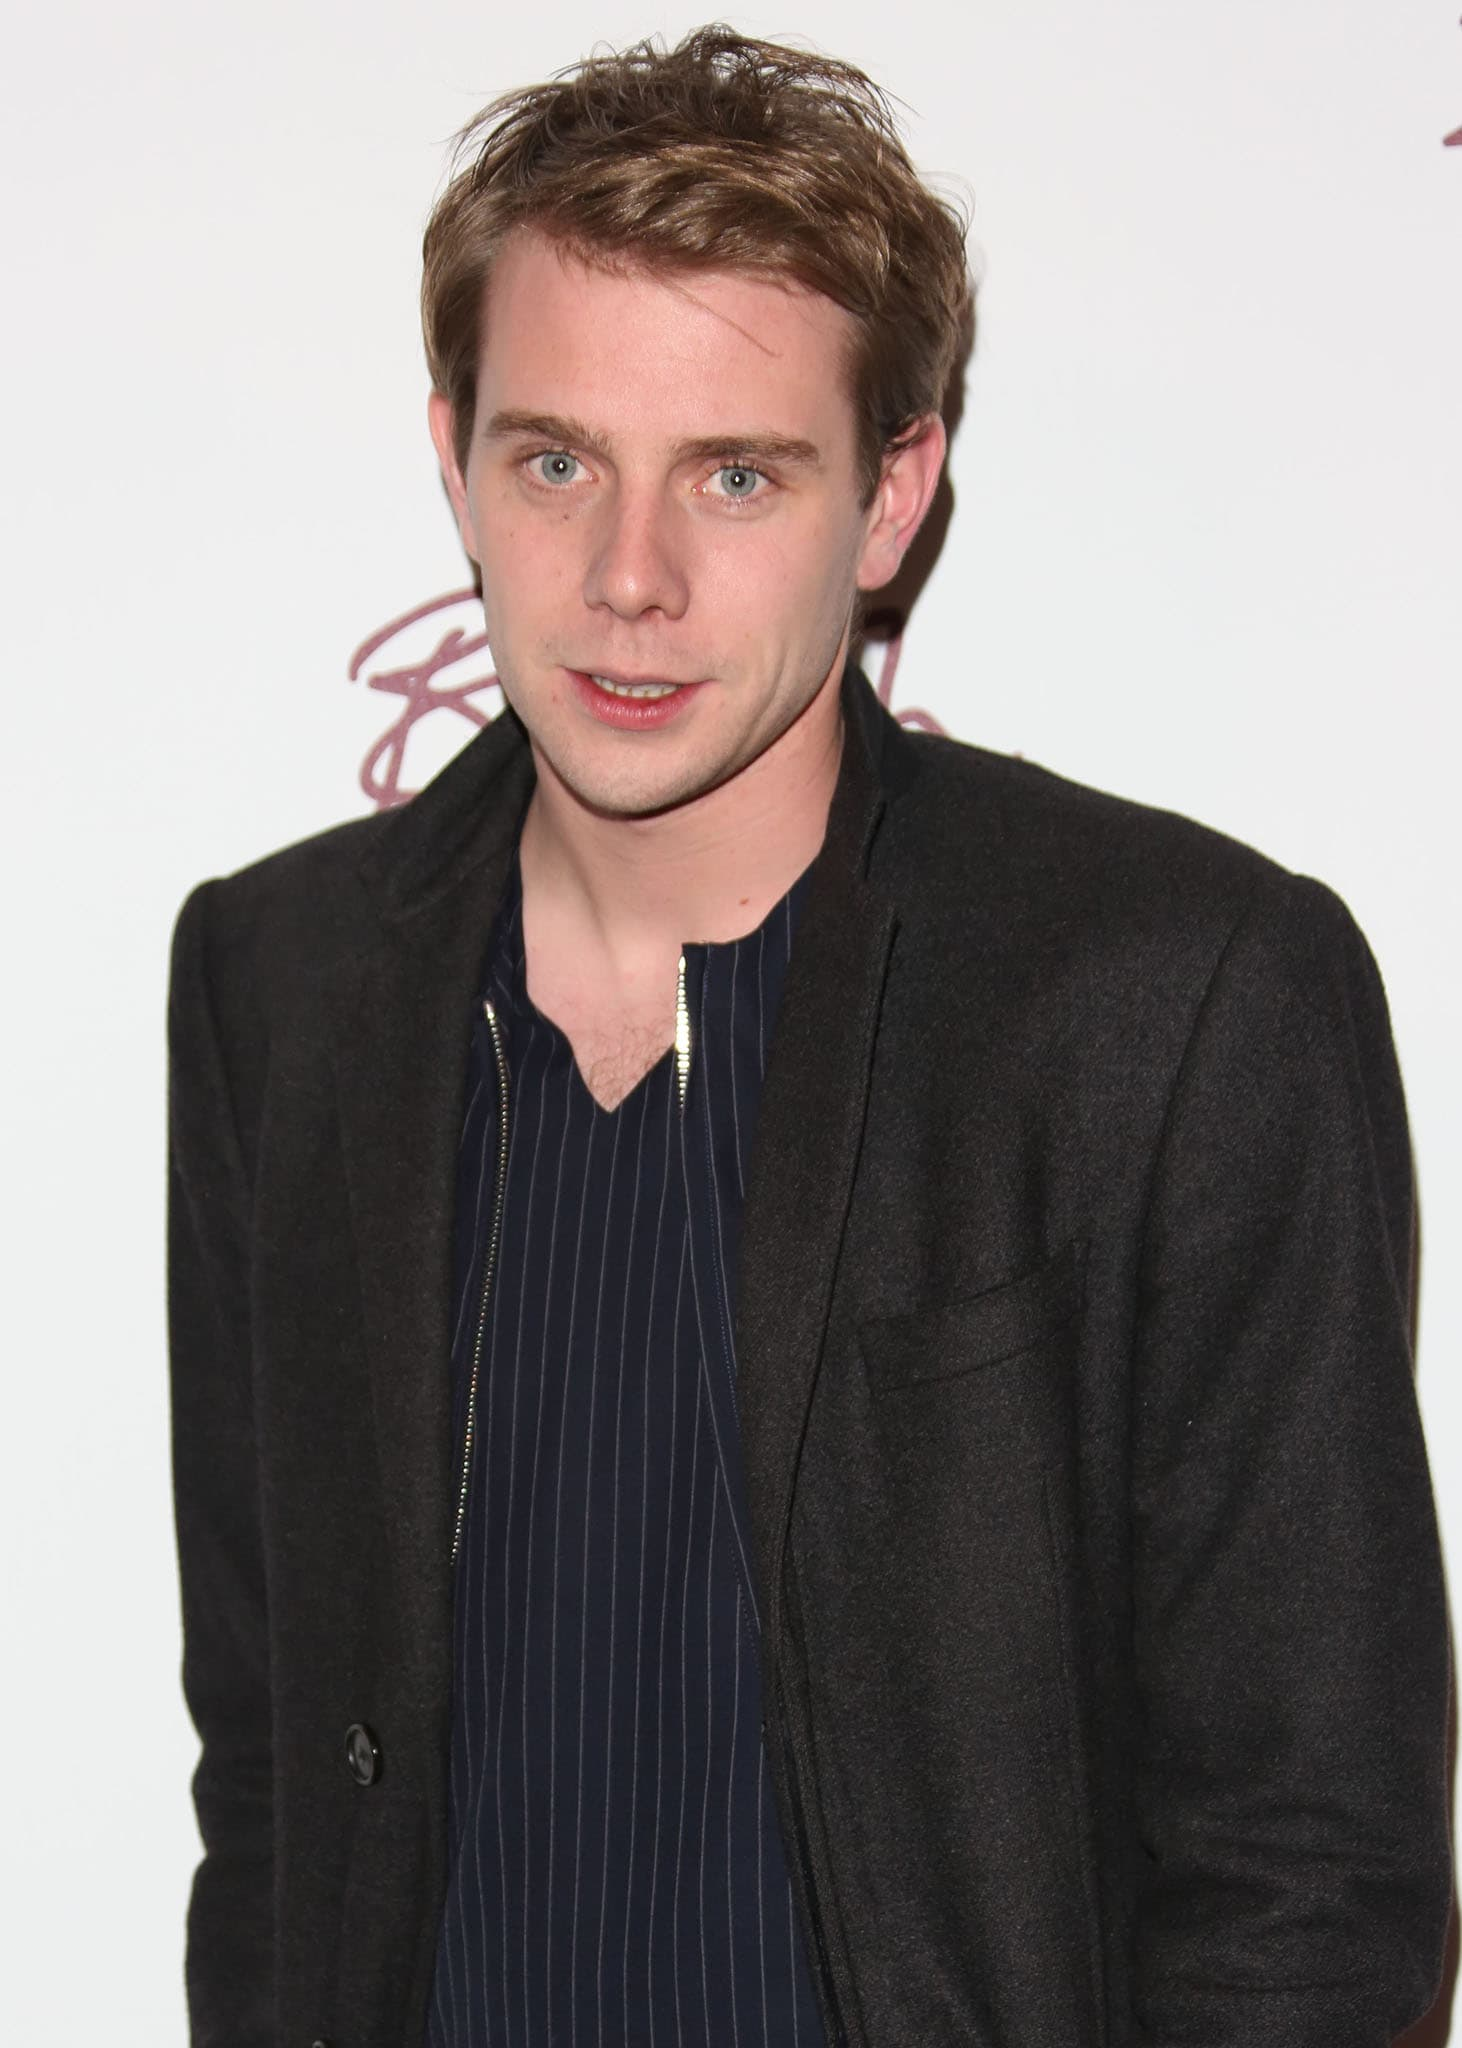 Jonathan Anderson, founder of JW Anderson, pictured at The British Fashion Awards 2012